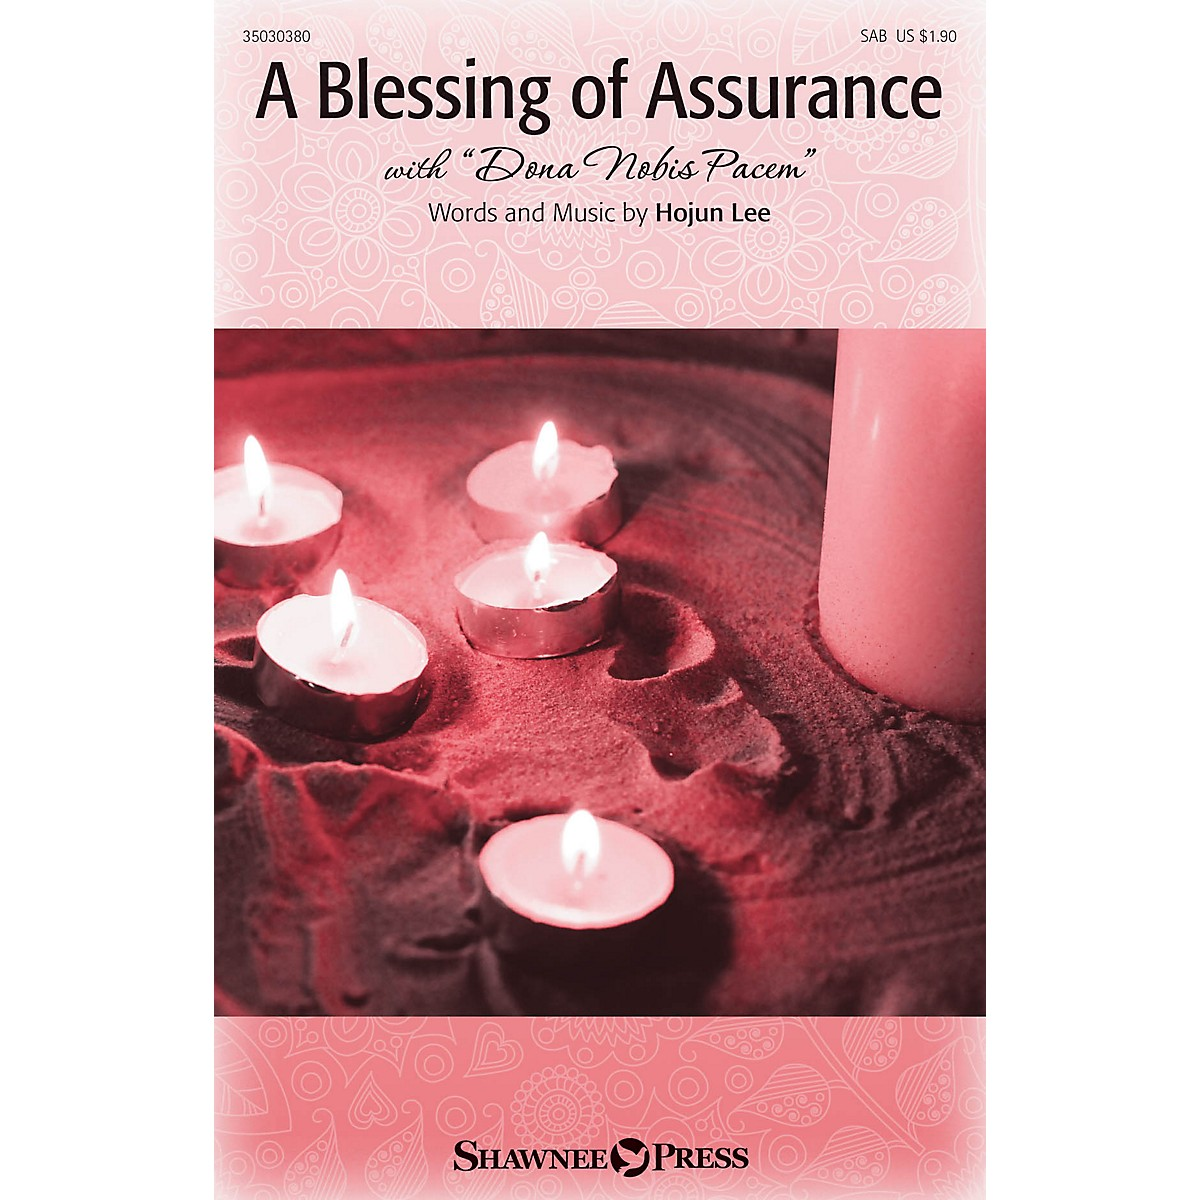 Shawnee Press A Blessing of Assurance (with Dona Nobis Pacem) SAB composed by Hojun Lee